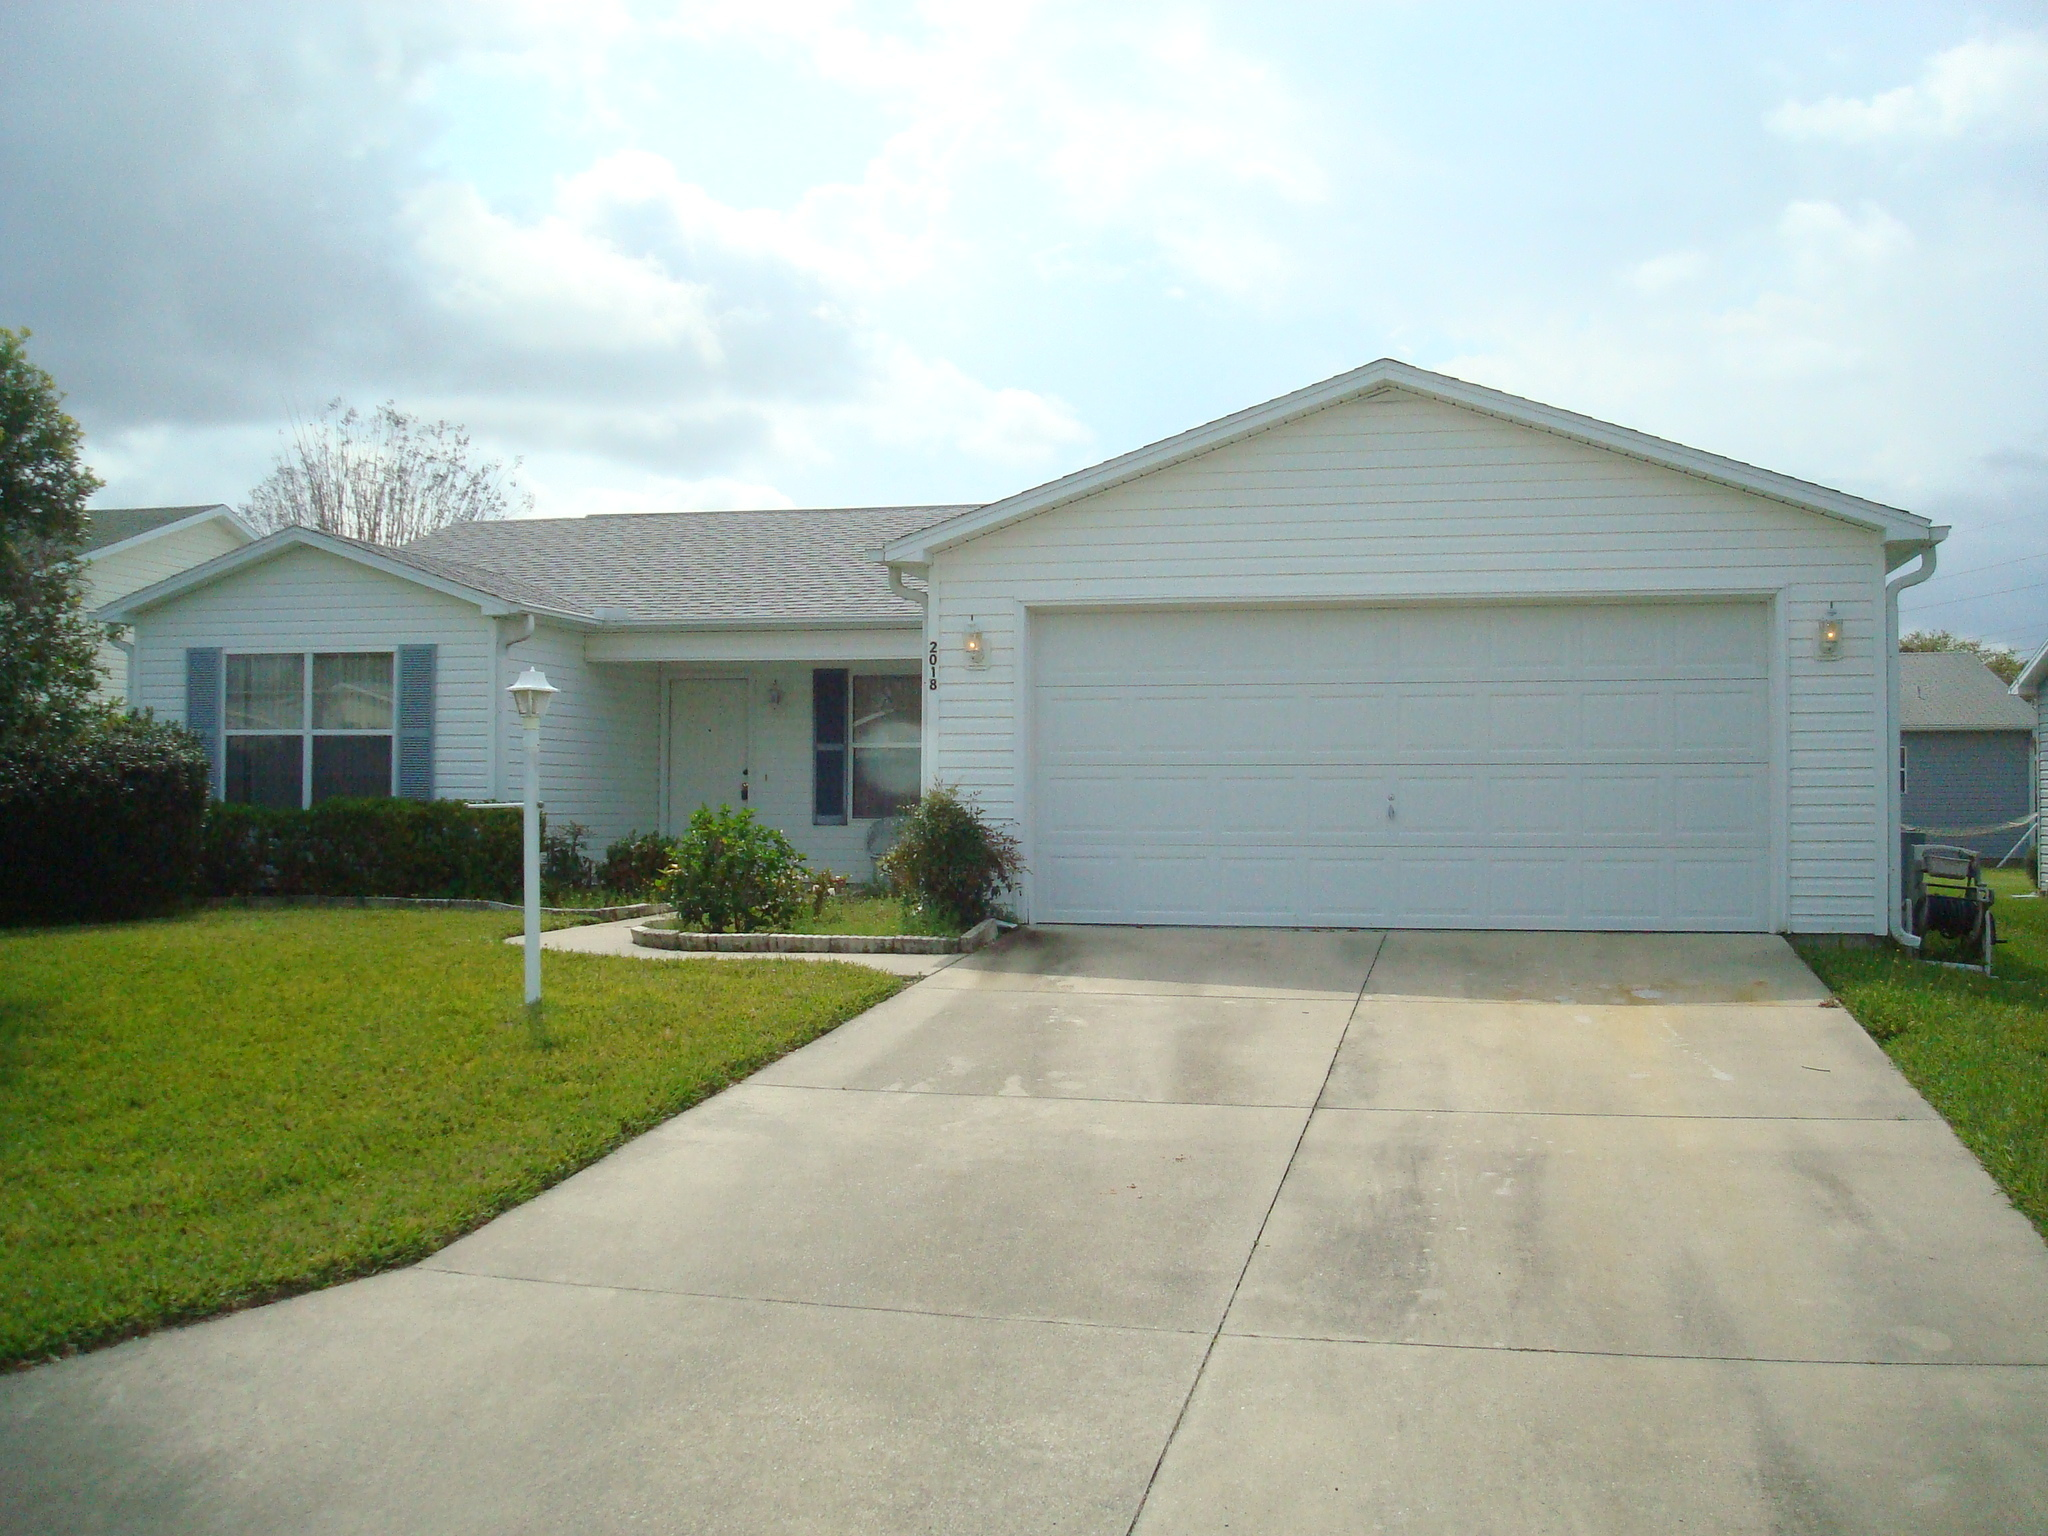 What s my spring valley clermont fl home worth market - Olive garden spring hill tennessee ...